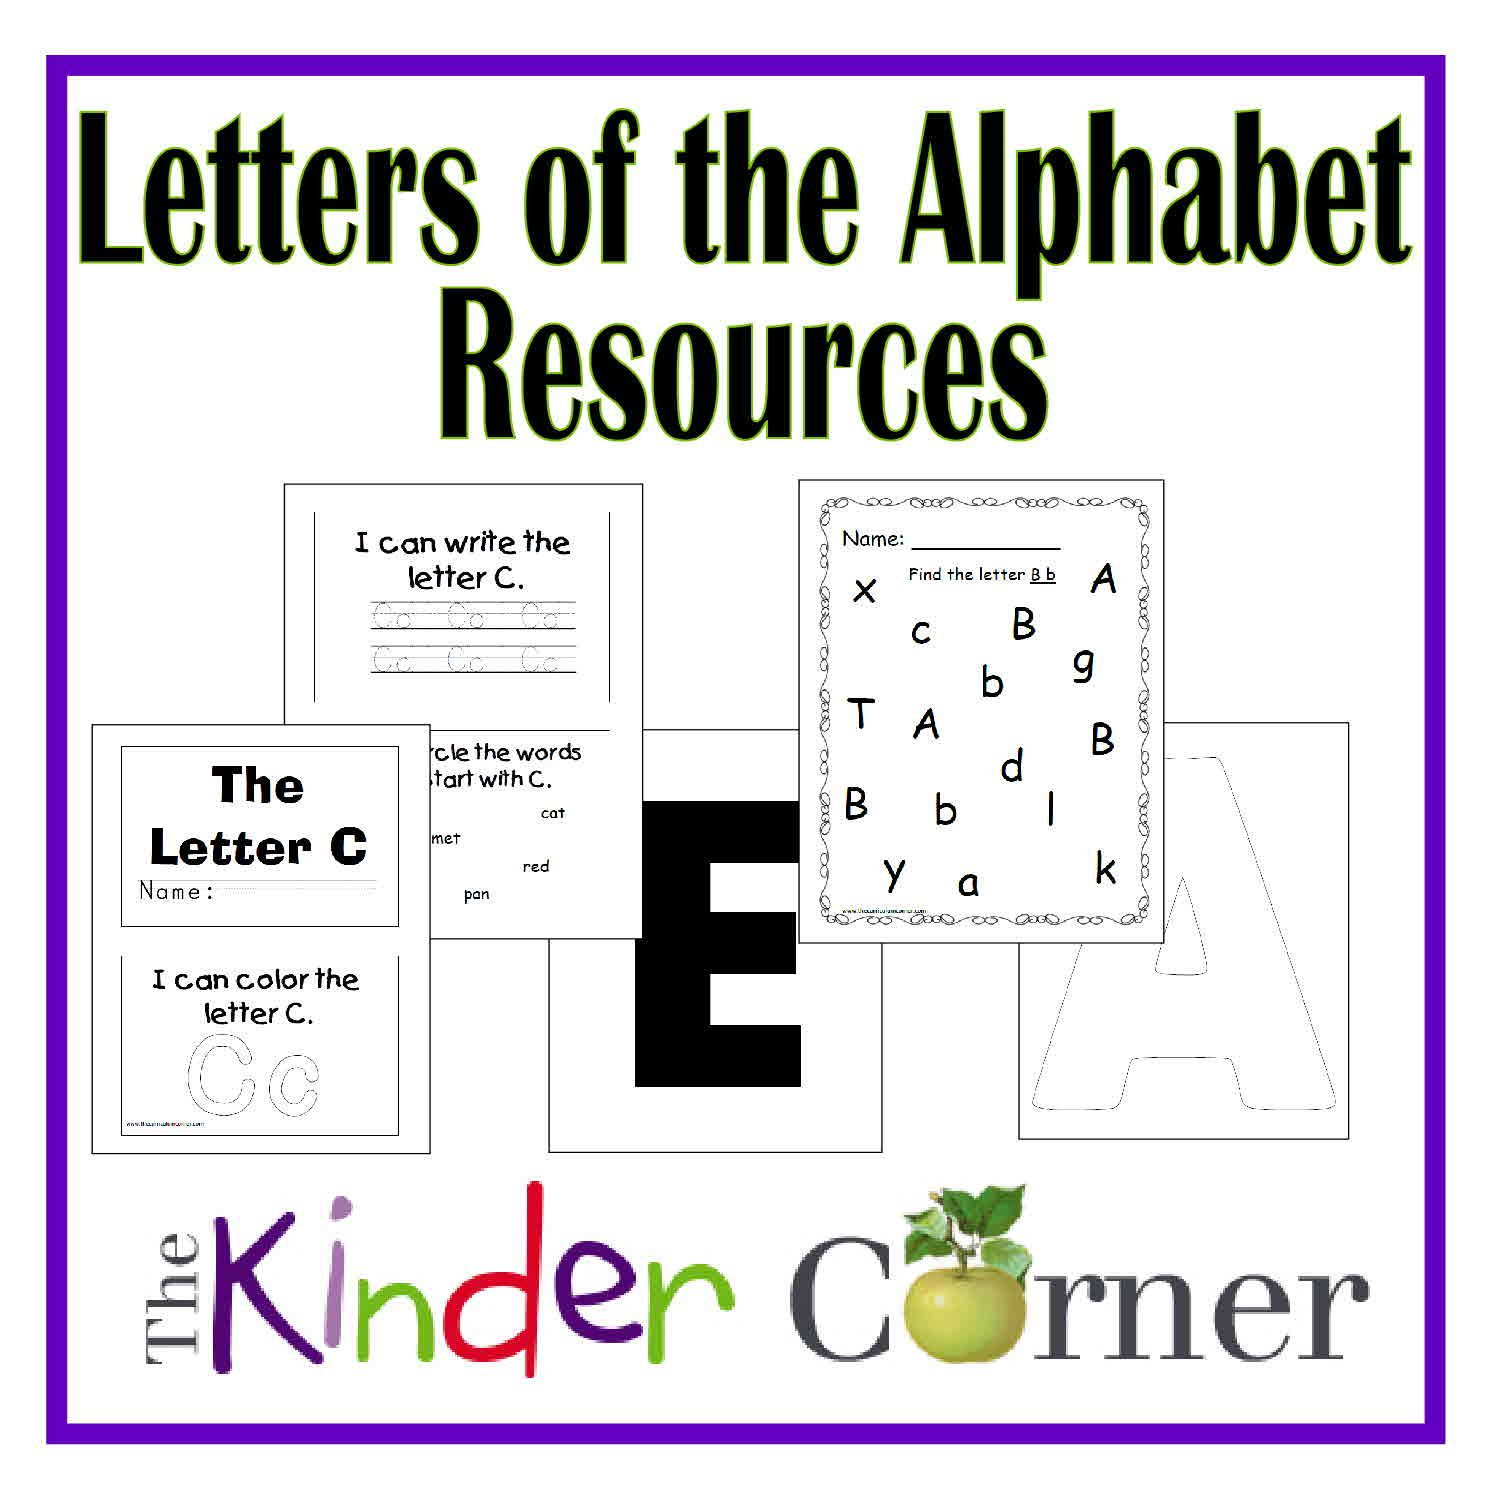 Letters of the alphabet resources curriculum teaching letters letters of the alphabet resources by the curriculum corner spiritdancerdesigns Choice Image